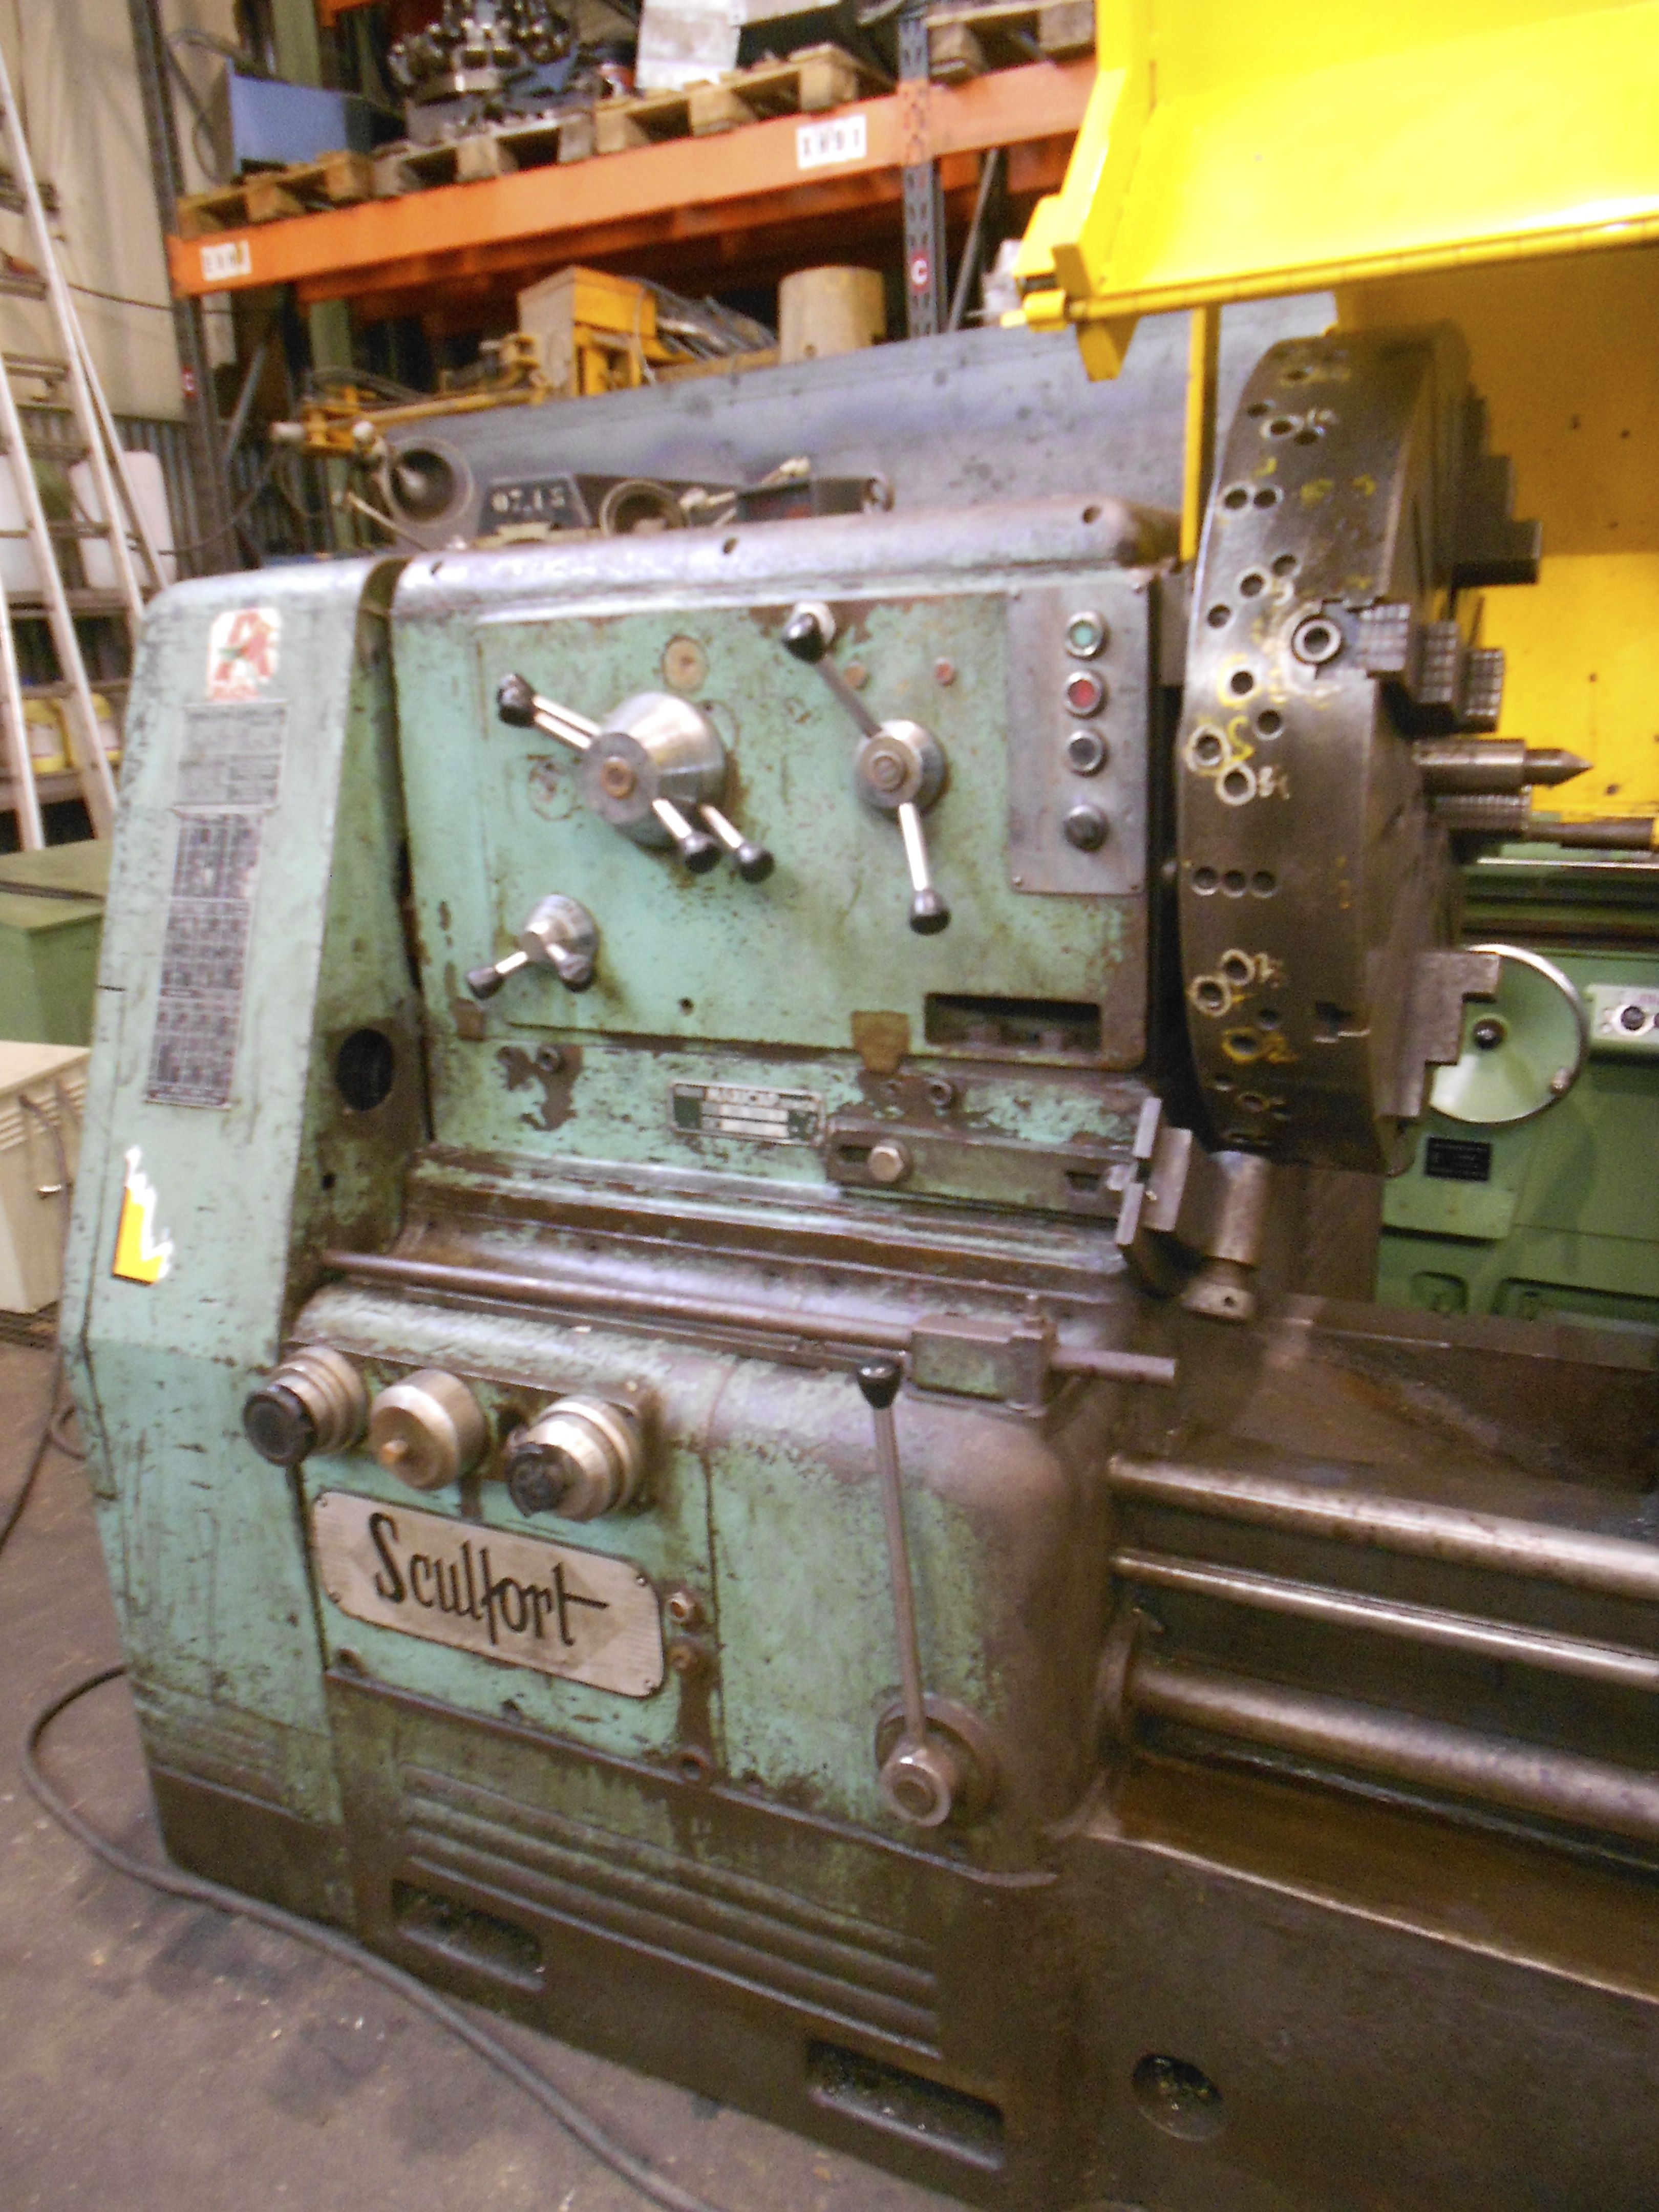 Centre Lathe Sculfort Maxicap 380 Distance Between